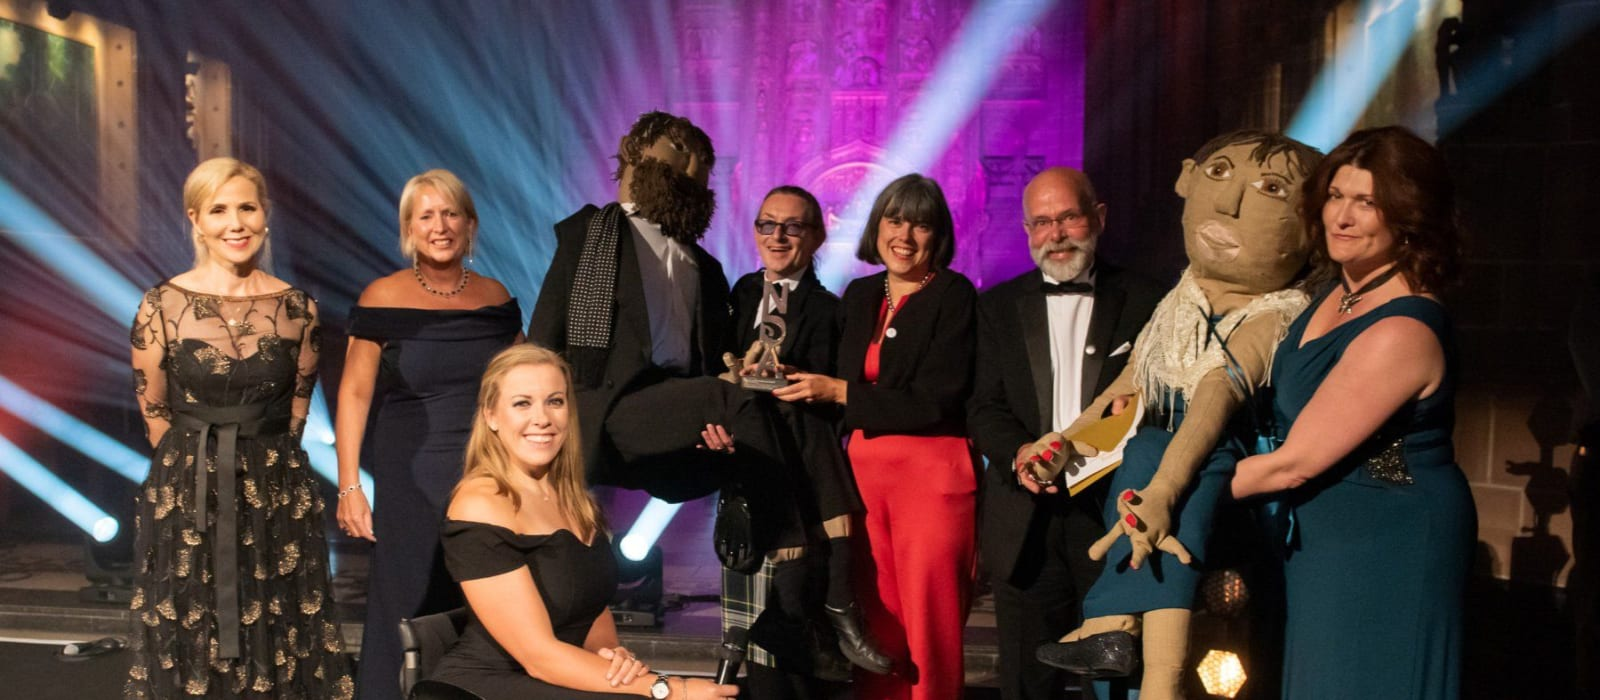 National Diversity Award Winners, 2019 - Community Organisation (Disability)